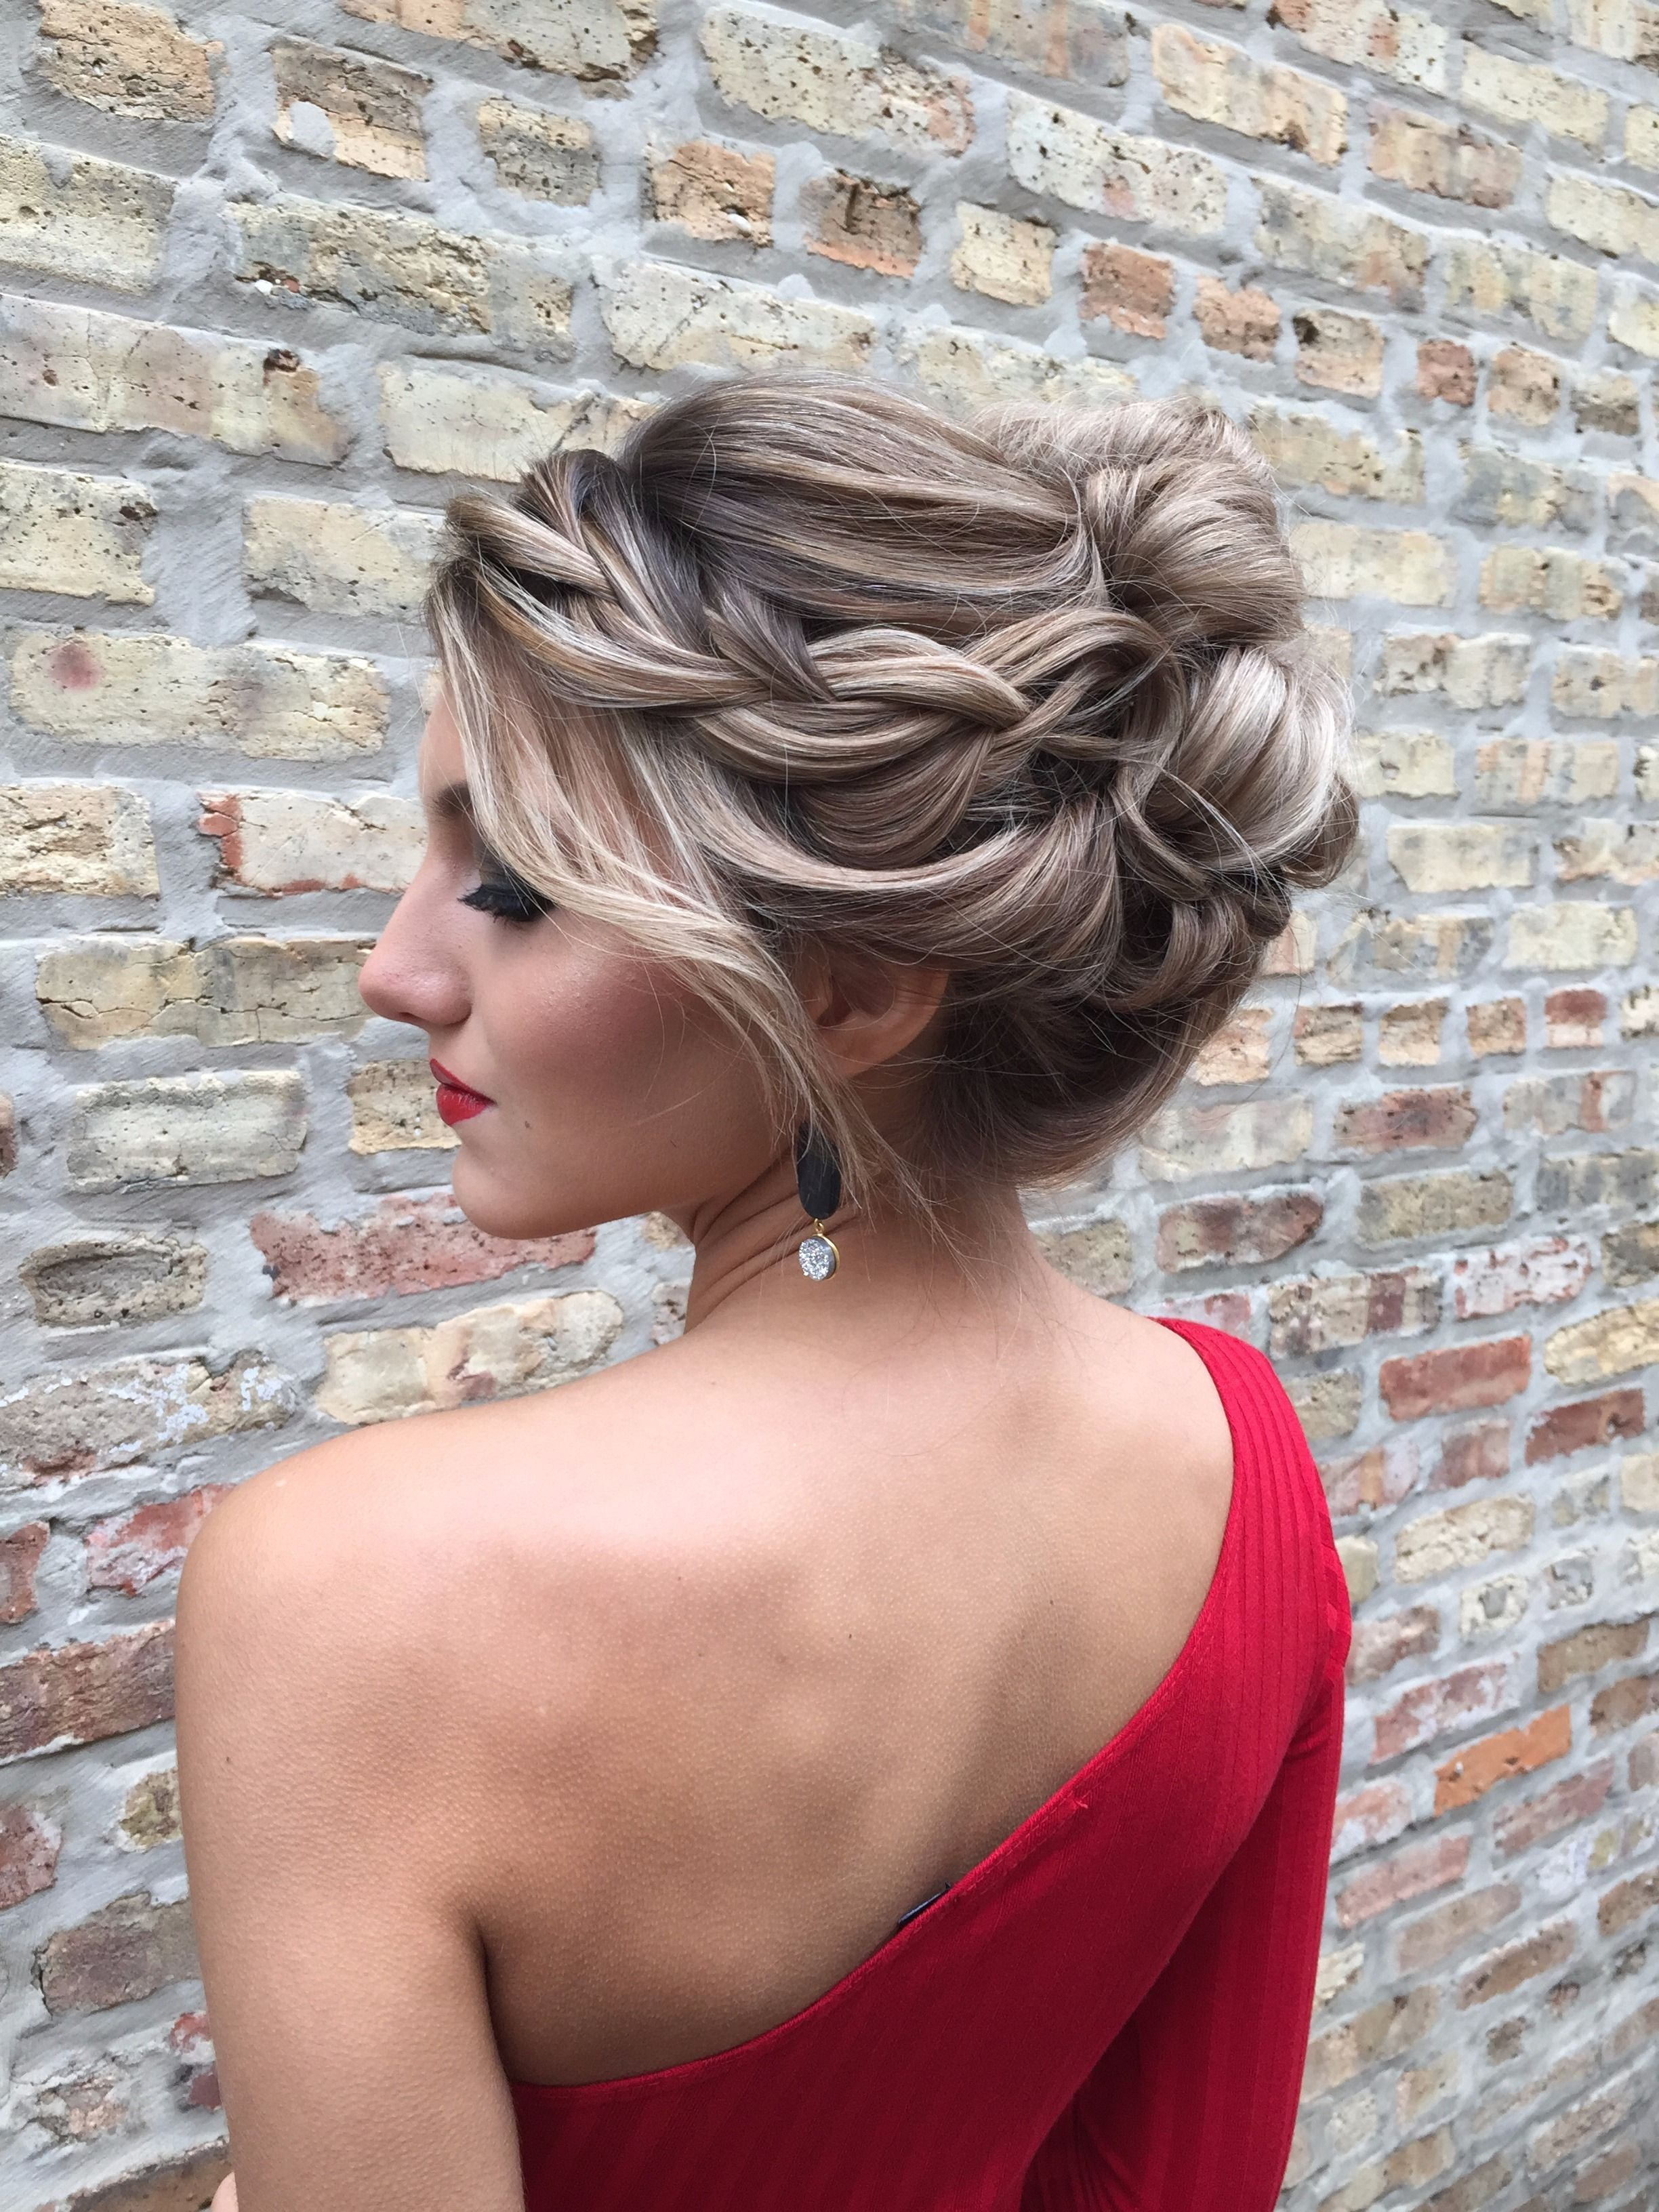 Some updo shots from our holiday hair session this elegant braided